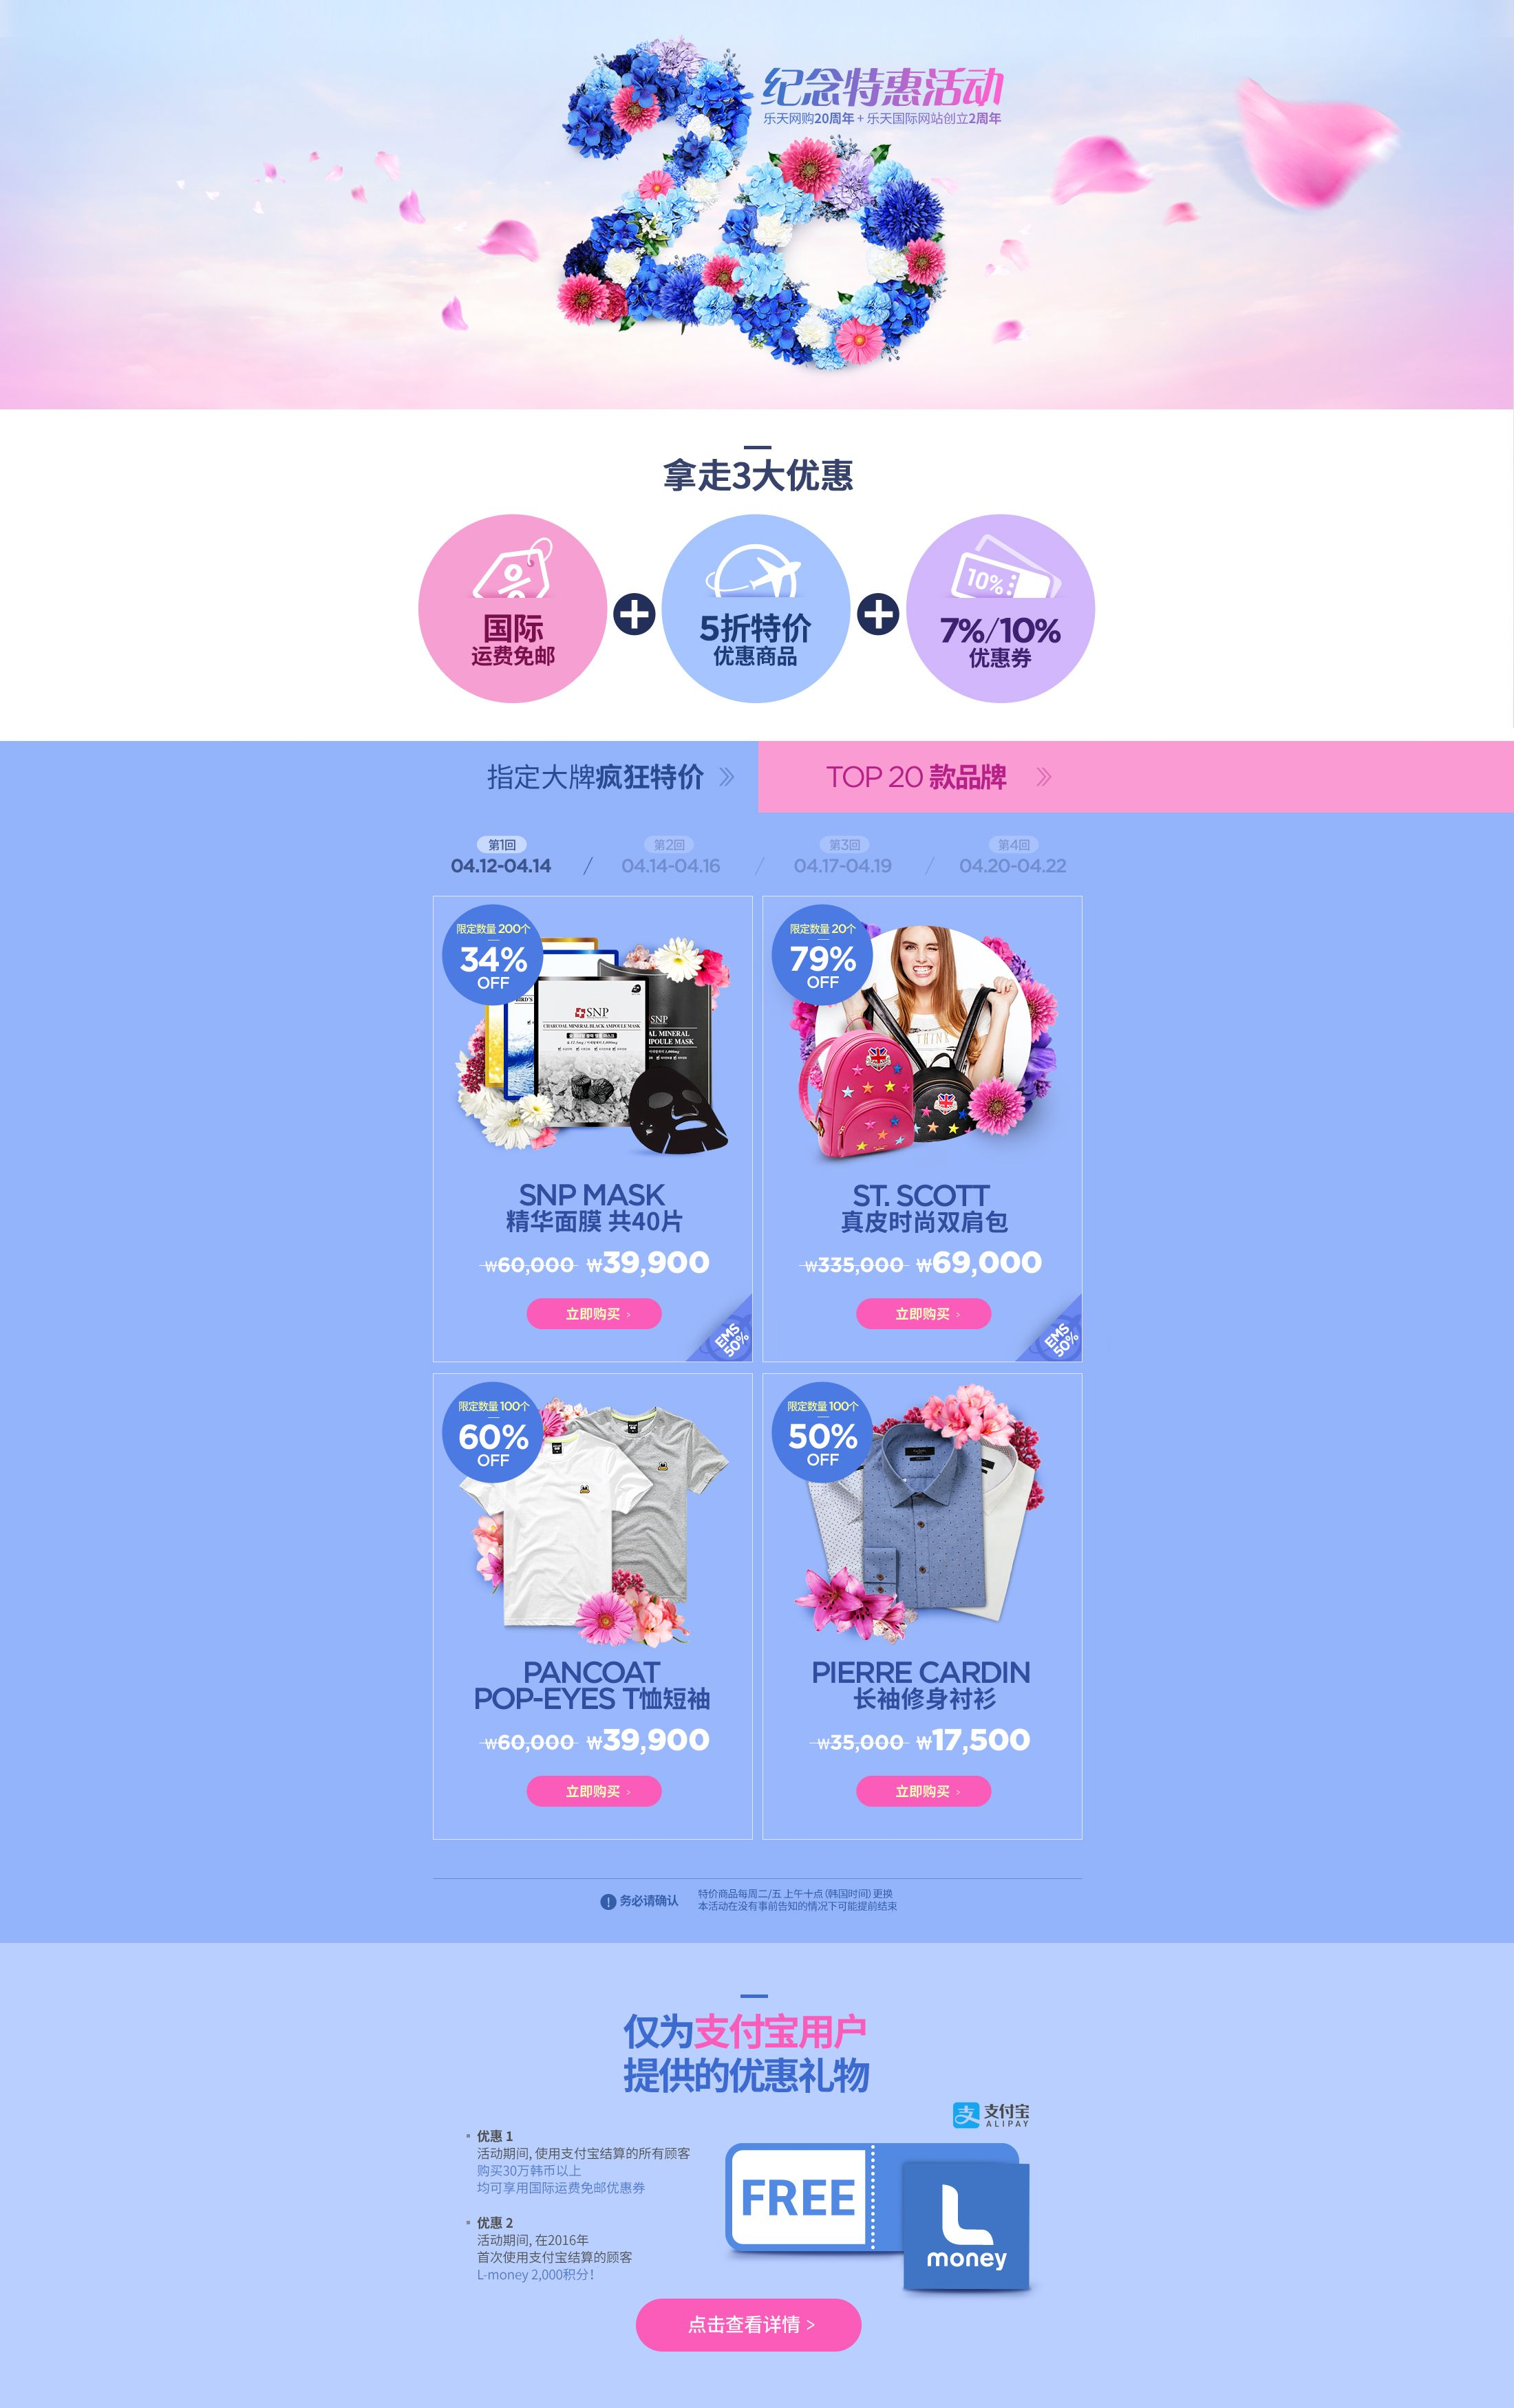 Global.Lotte.com  20th Anniversary  Designed by 이아람